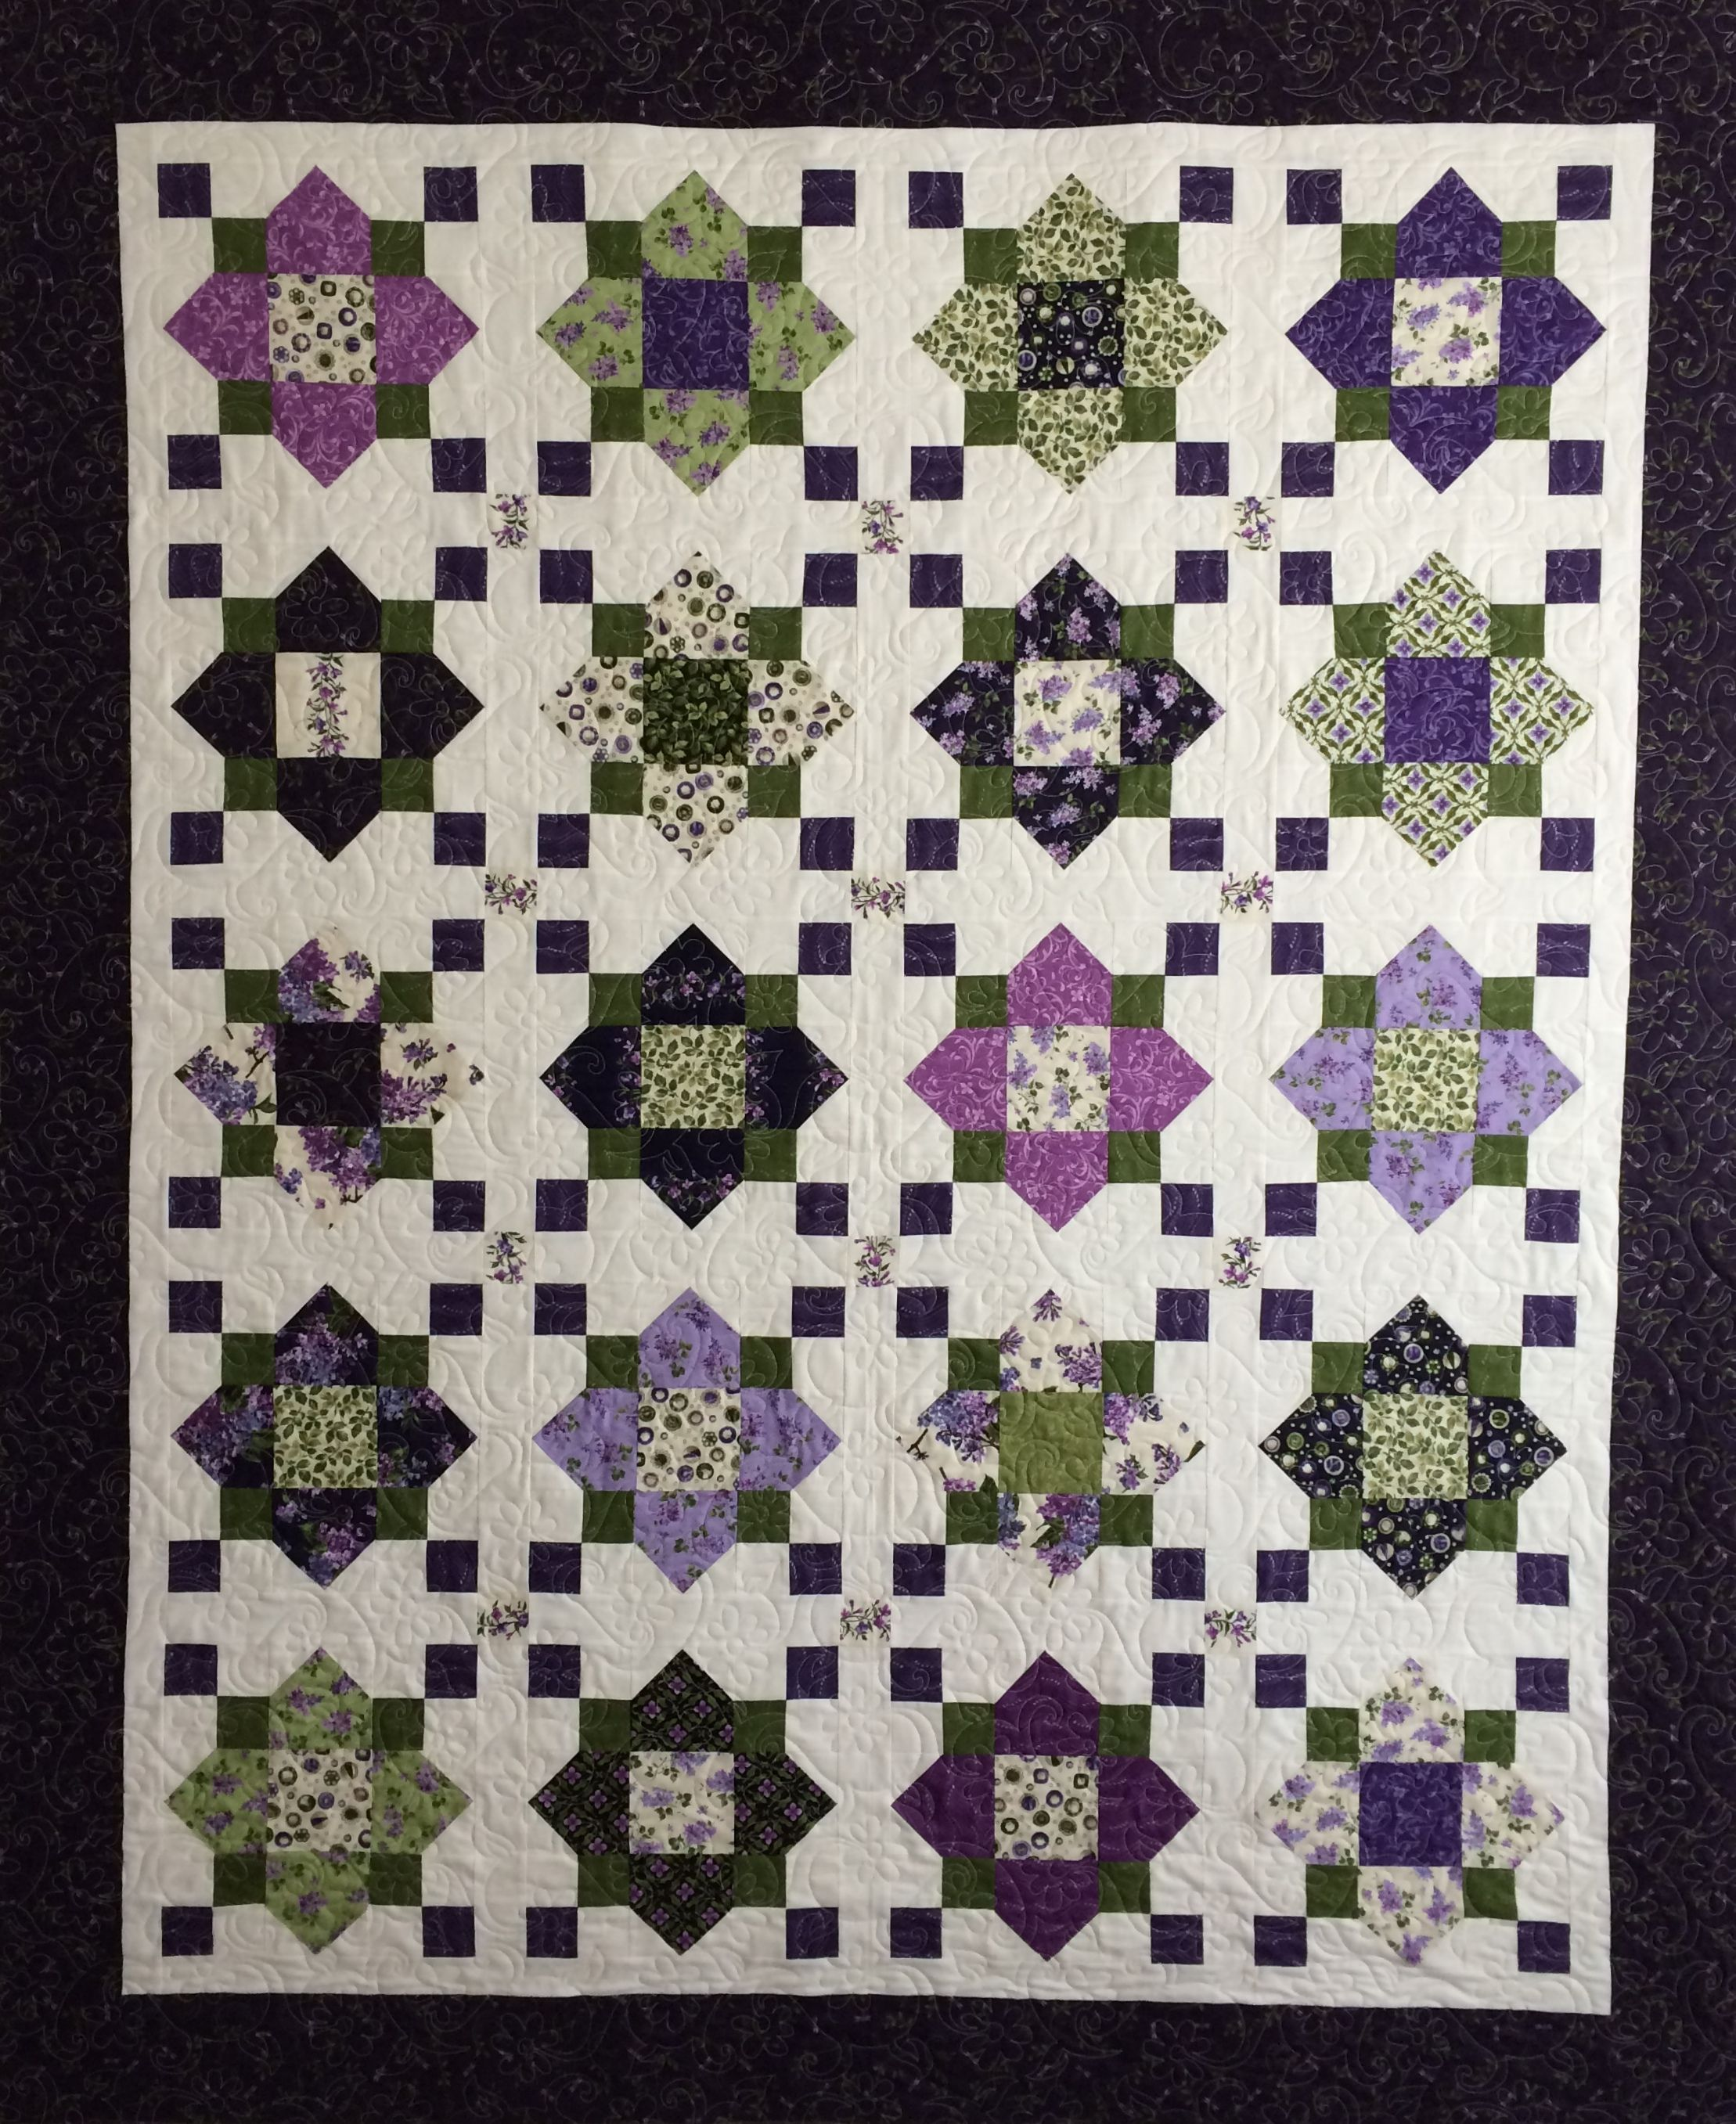 quatrefoil block free pattern | High Drama Quatrefoil Block — Free ... : quilt patterns free download - Adamdwight.com